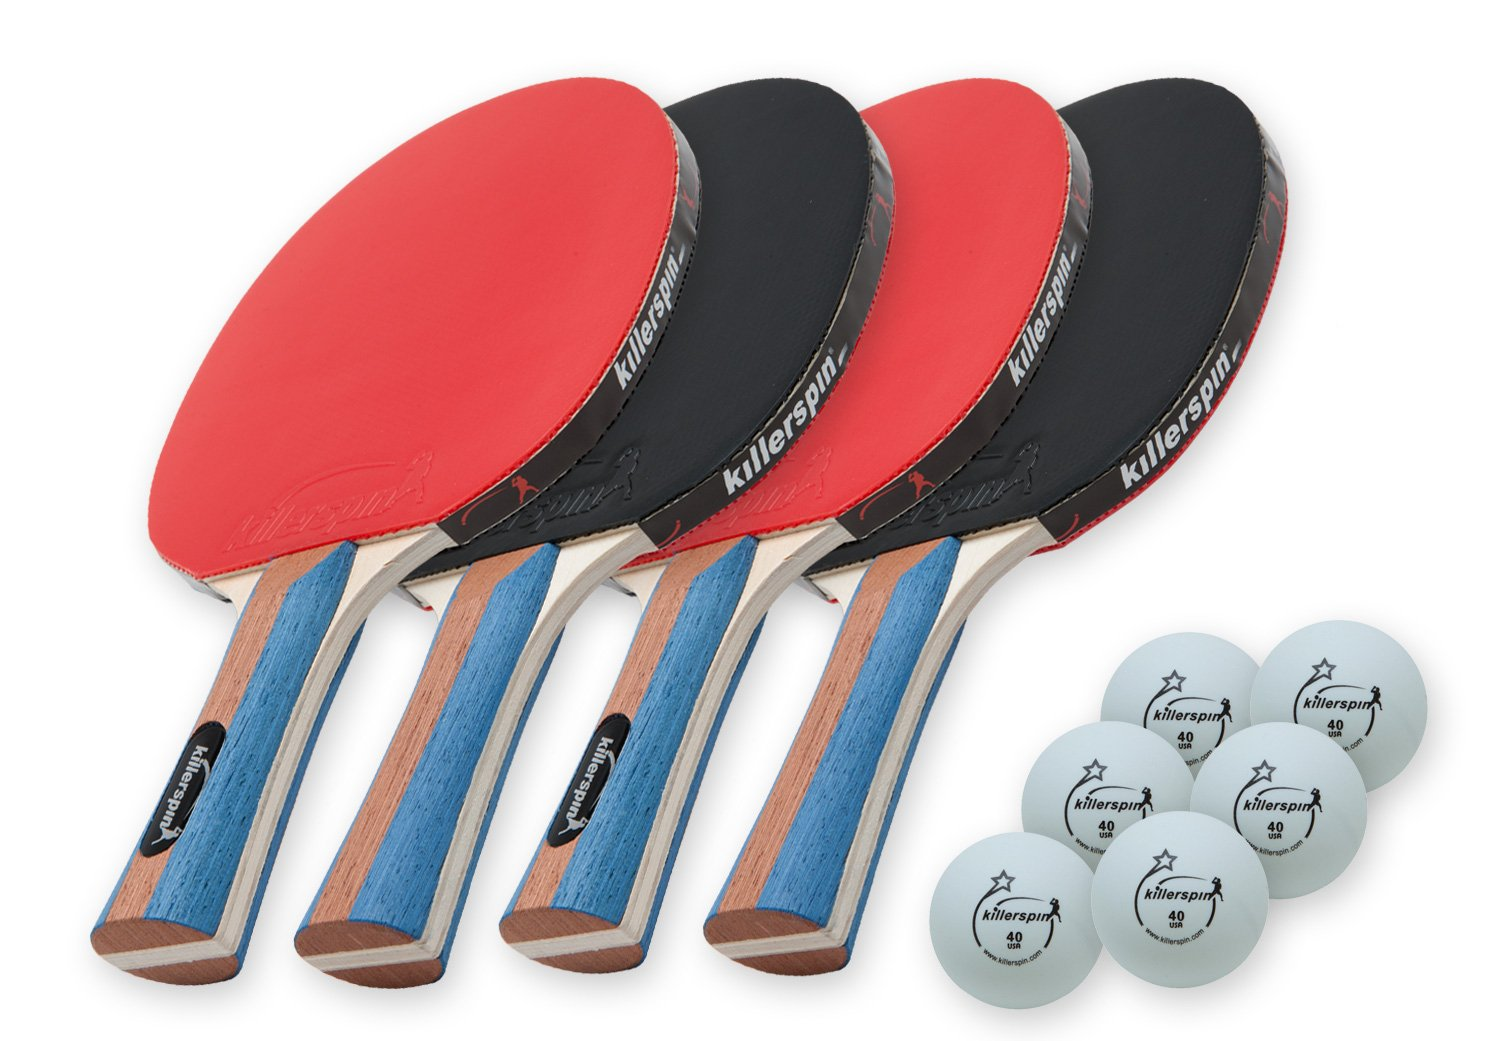 Amazon.com : Killerspin JETSET4 - Table Tennis Set with 4 Ping Pong ...